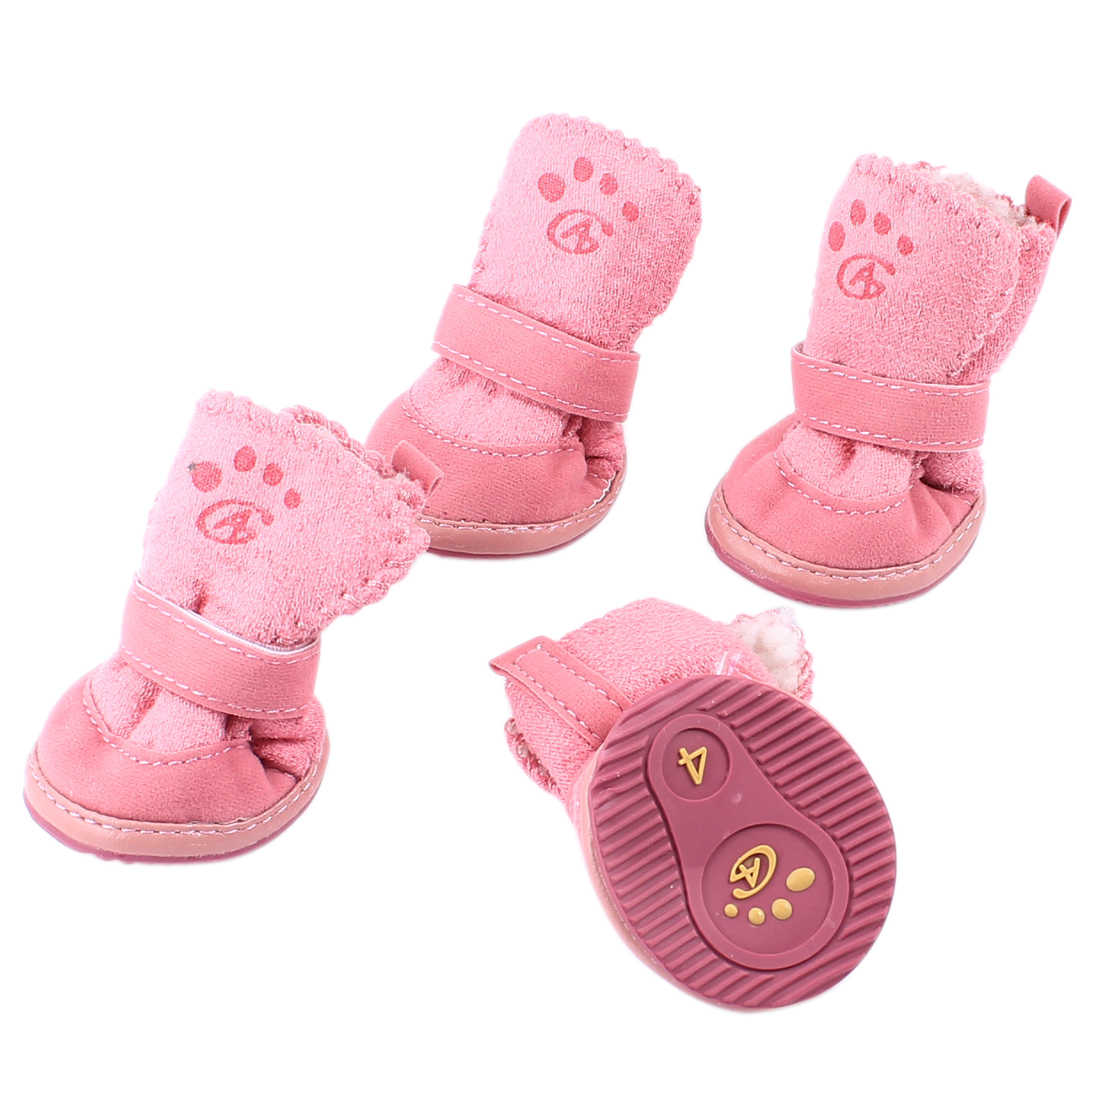 2 Pair Detachable Closure Pet Puppy Dog Shoes Booties Boots Pink Size XS